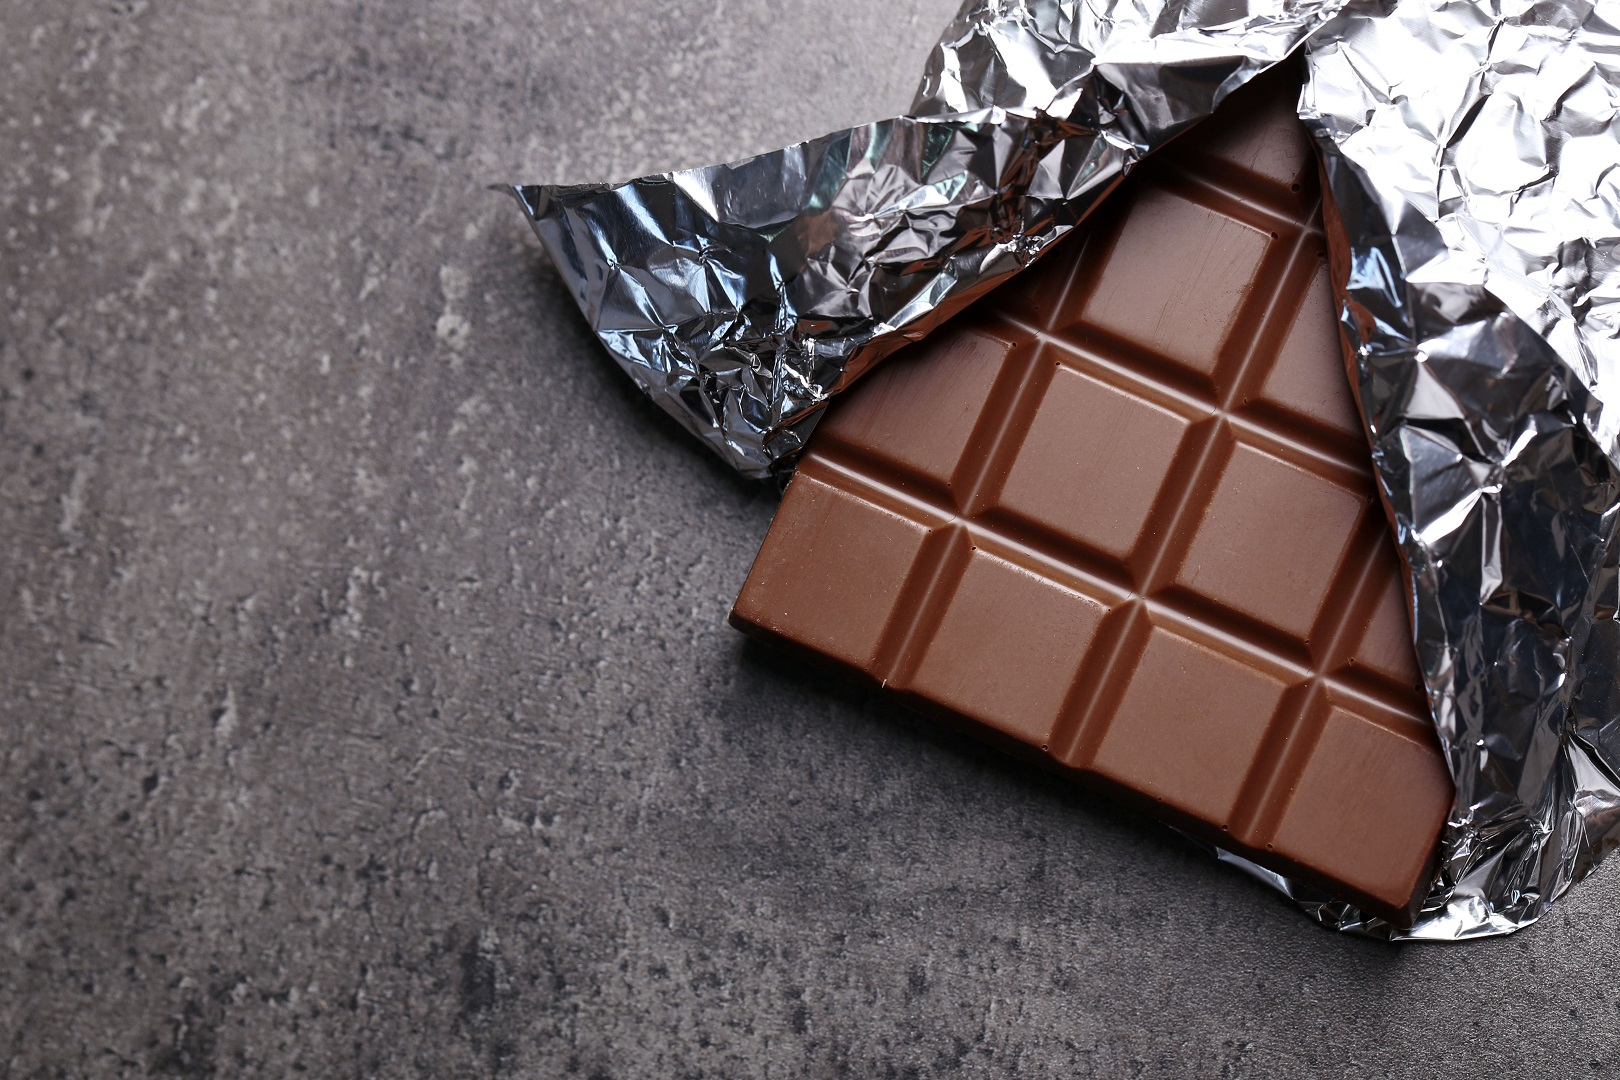 Milk Chocolate Bar Wrapped in Foil